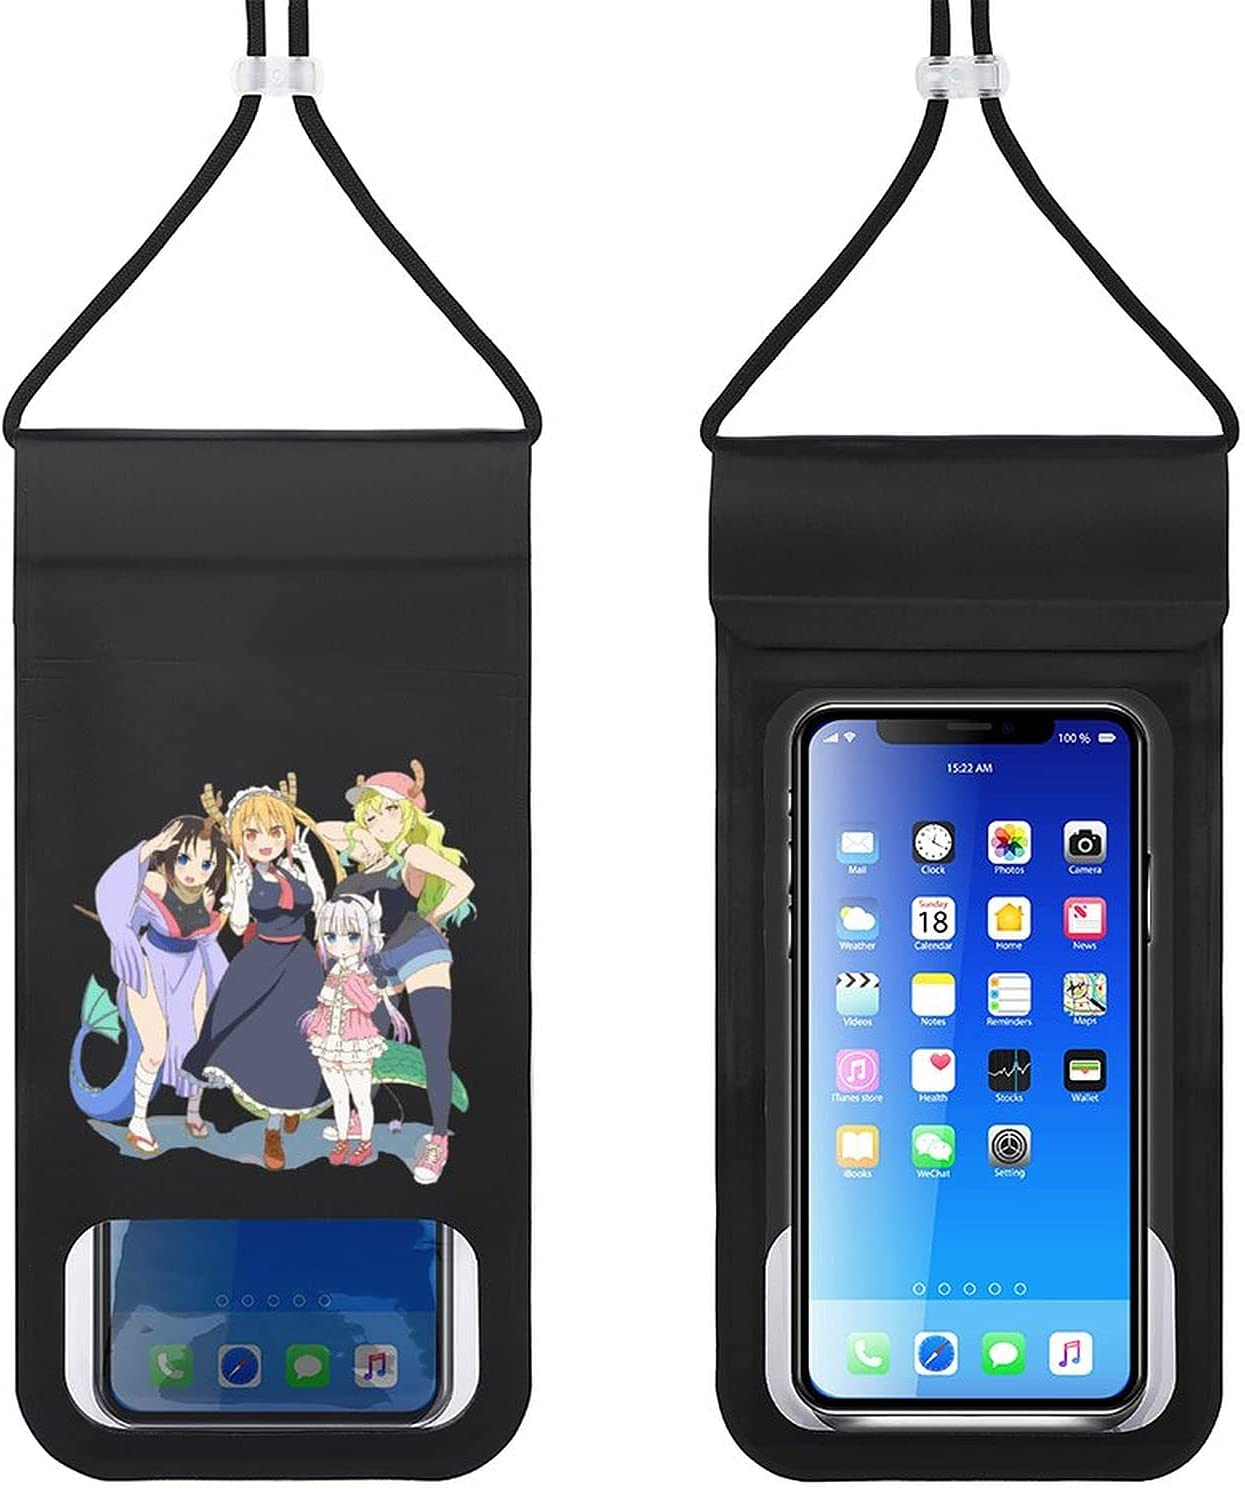 Miss Kobayashi's Dragon Maid Waterproof Phone Pouch Cellphone Dry Bag Suitable for Smartphones Up to 6.5 Inches Beach, Fishing, Swimming, Boating